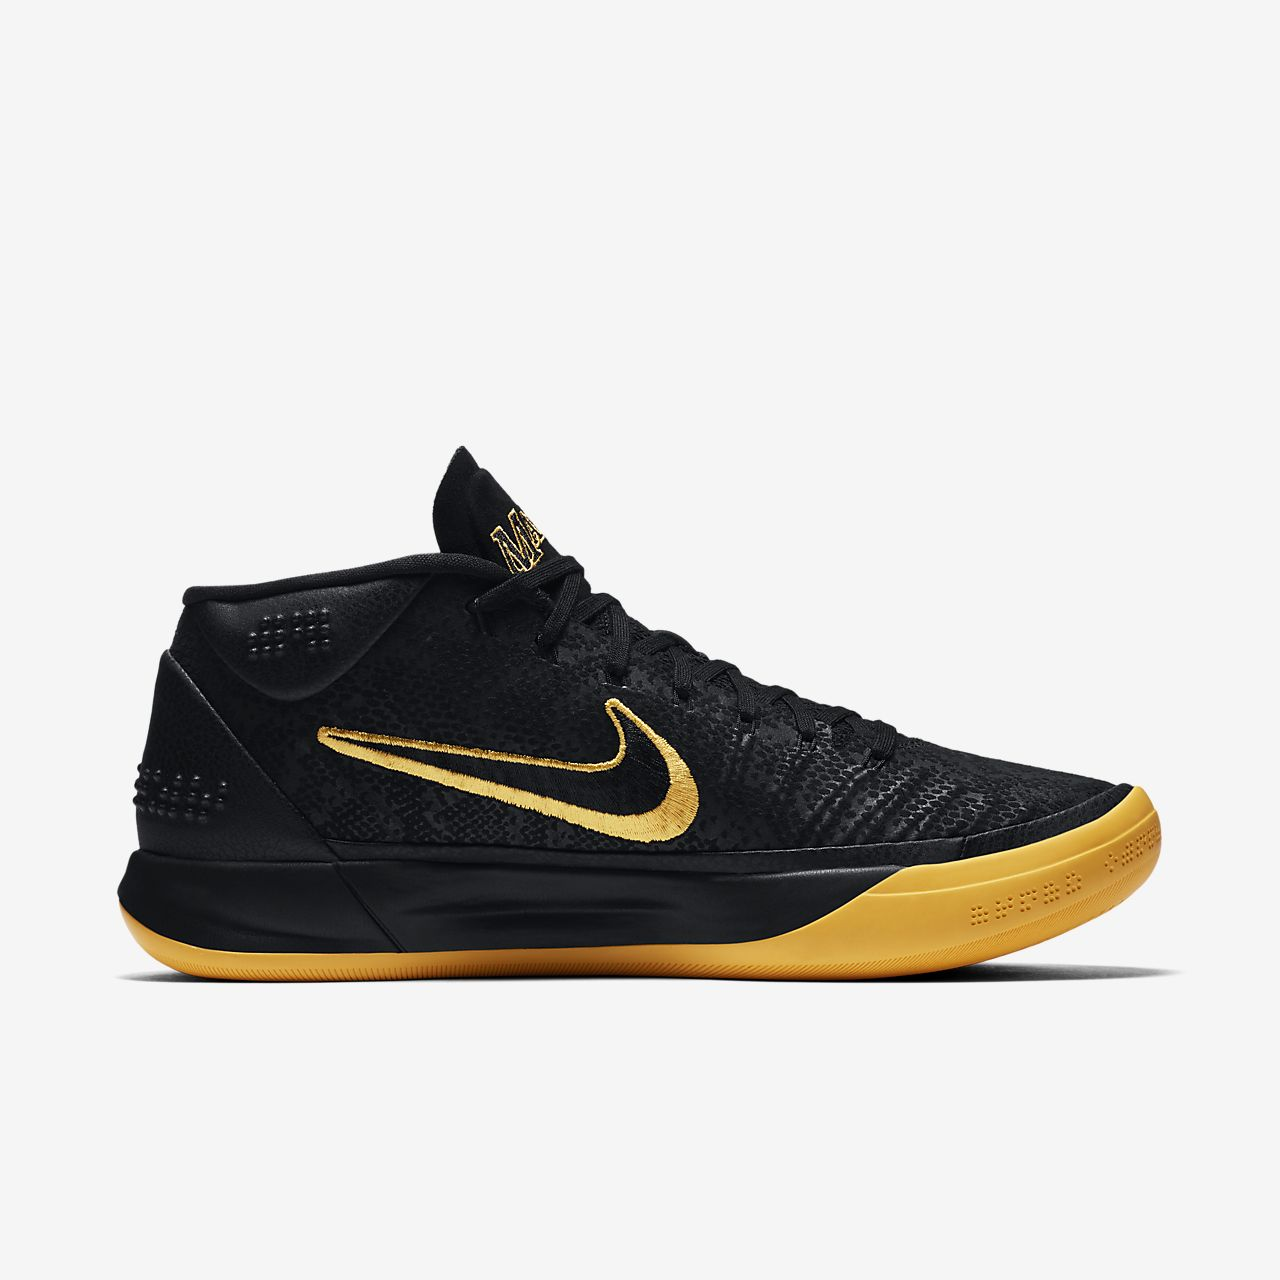 mens all black air max kobe black mamba shoes